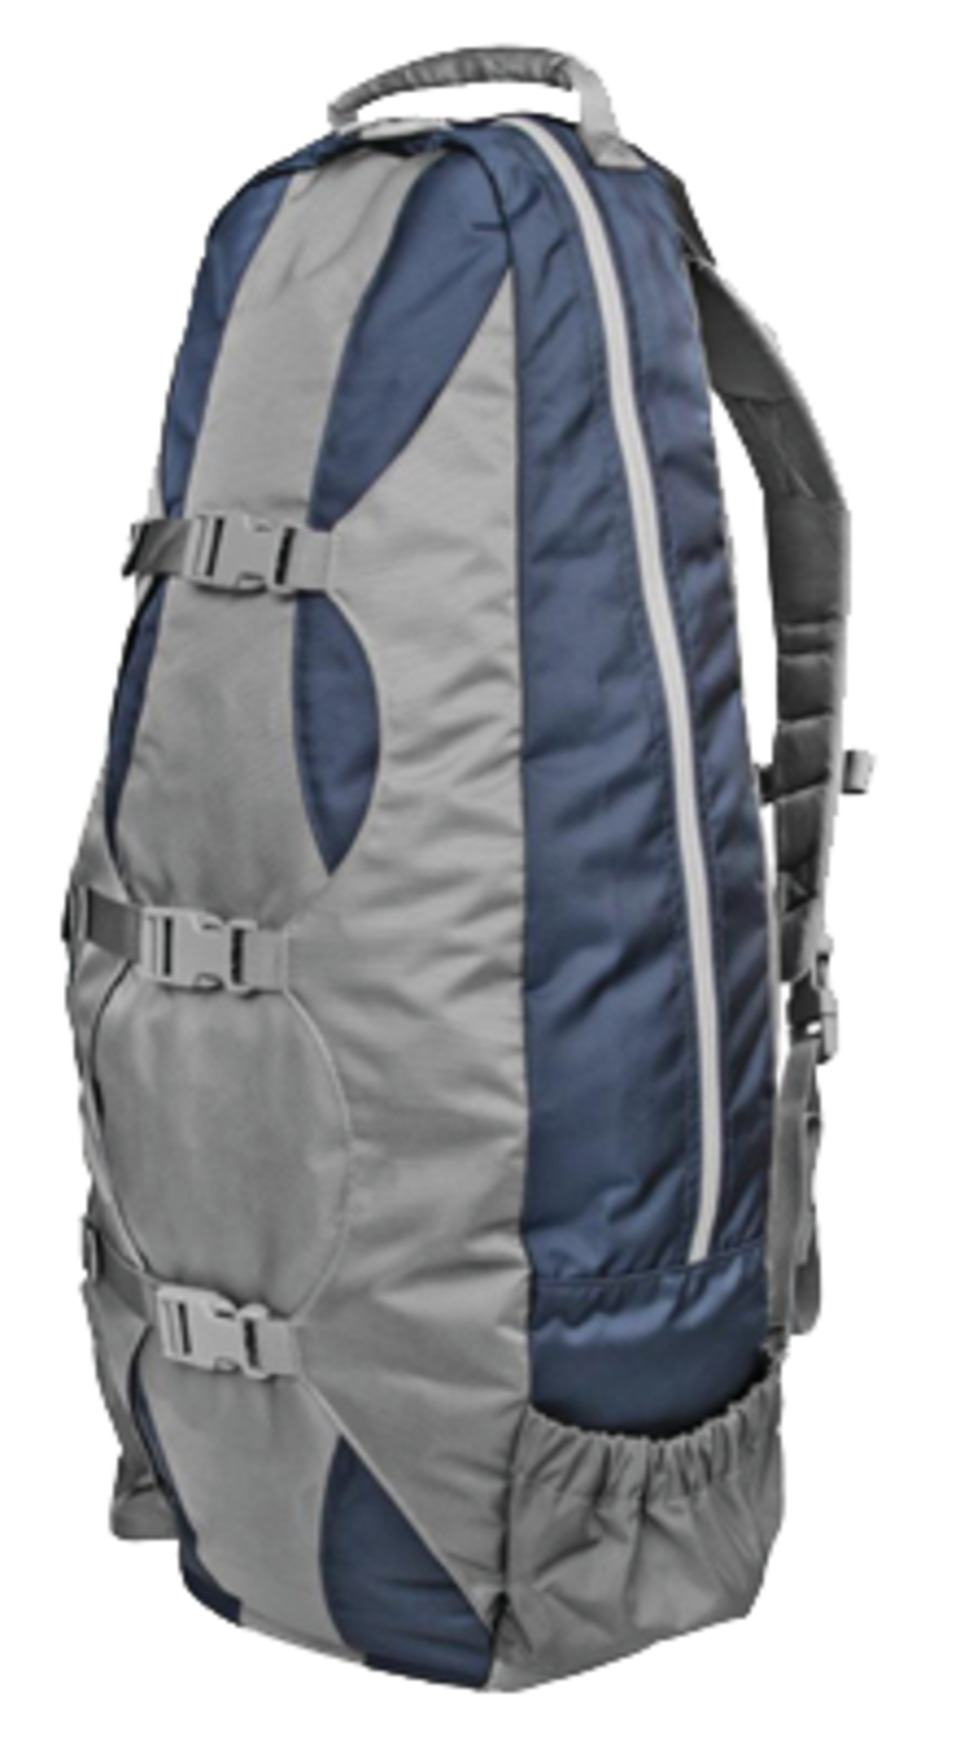 Invisible Off Body Carry With Blackhawk Diversion Bags Packs